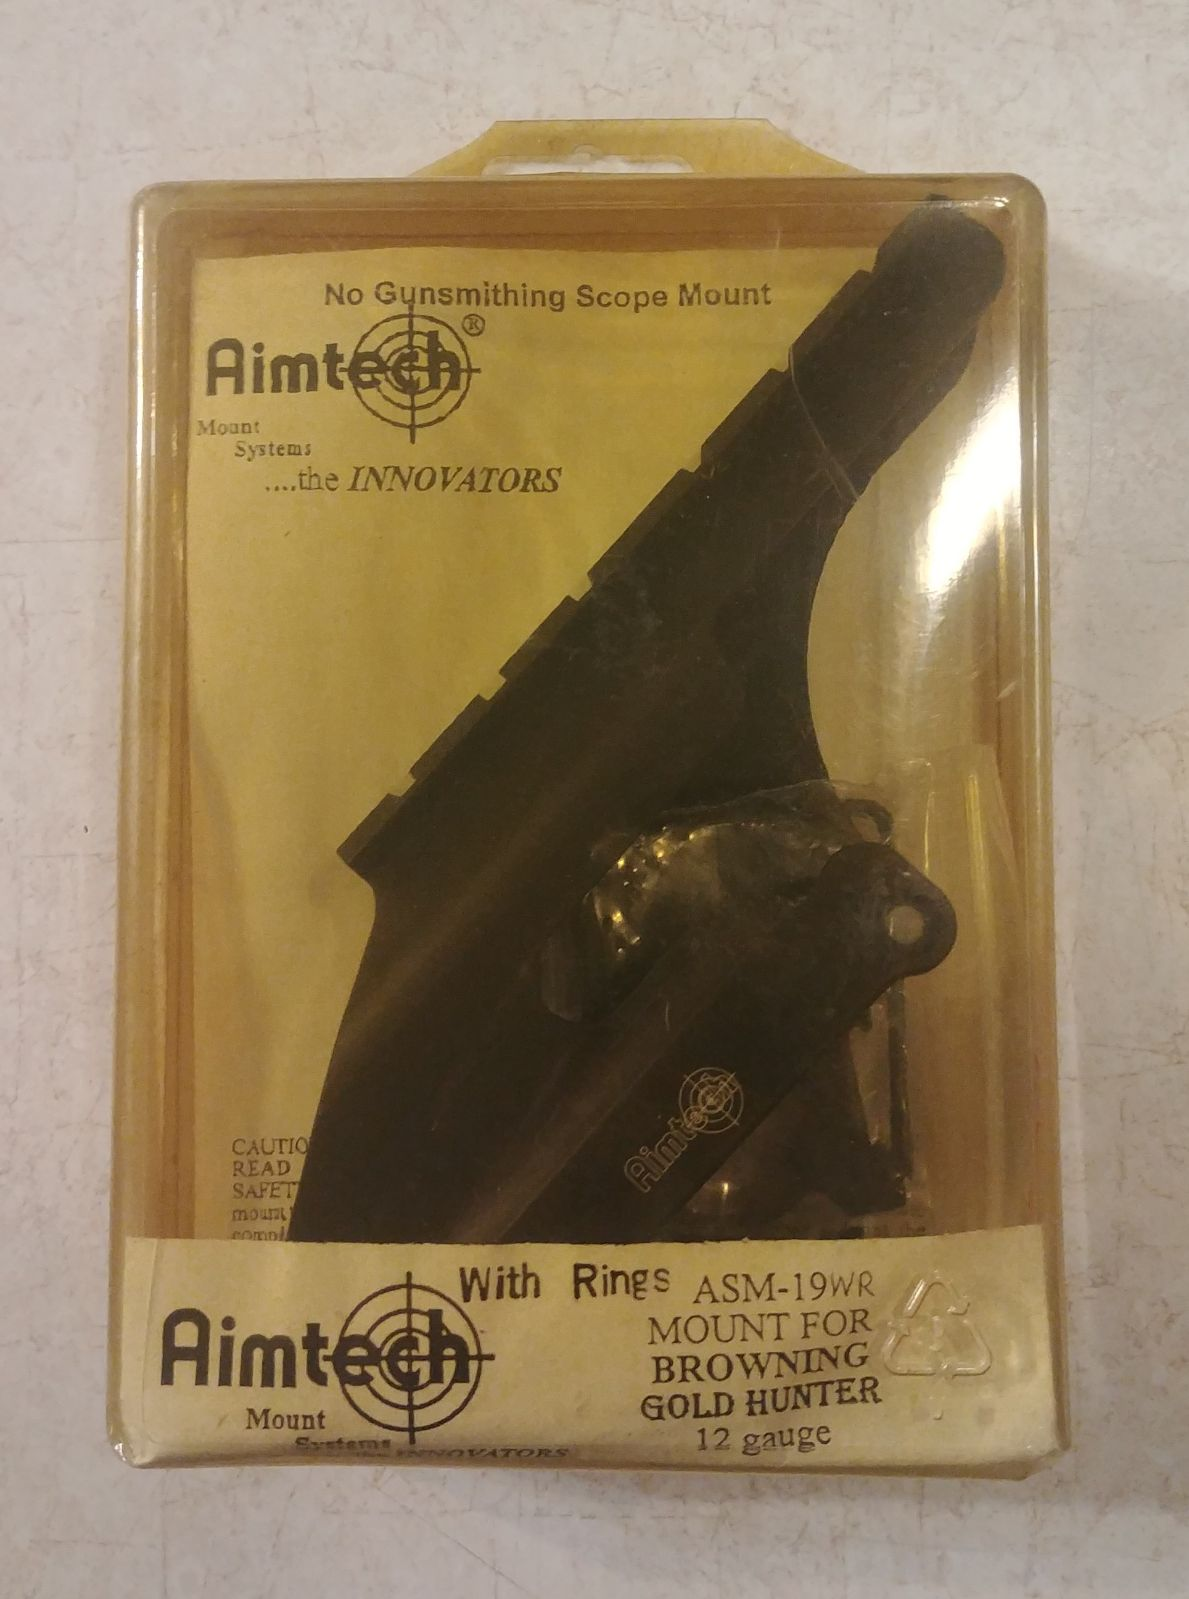 Aimtech ASM19WR Browning 12G Scope Mount